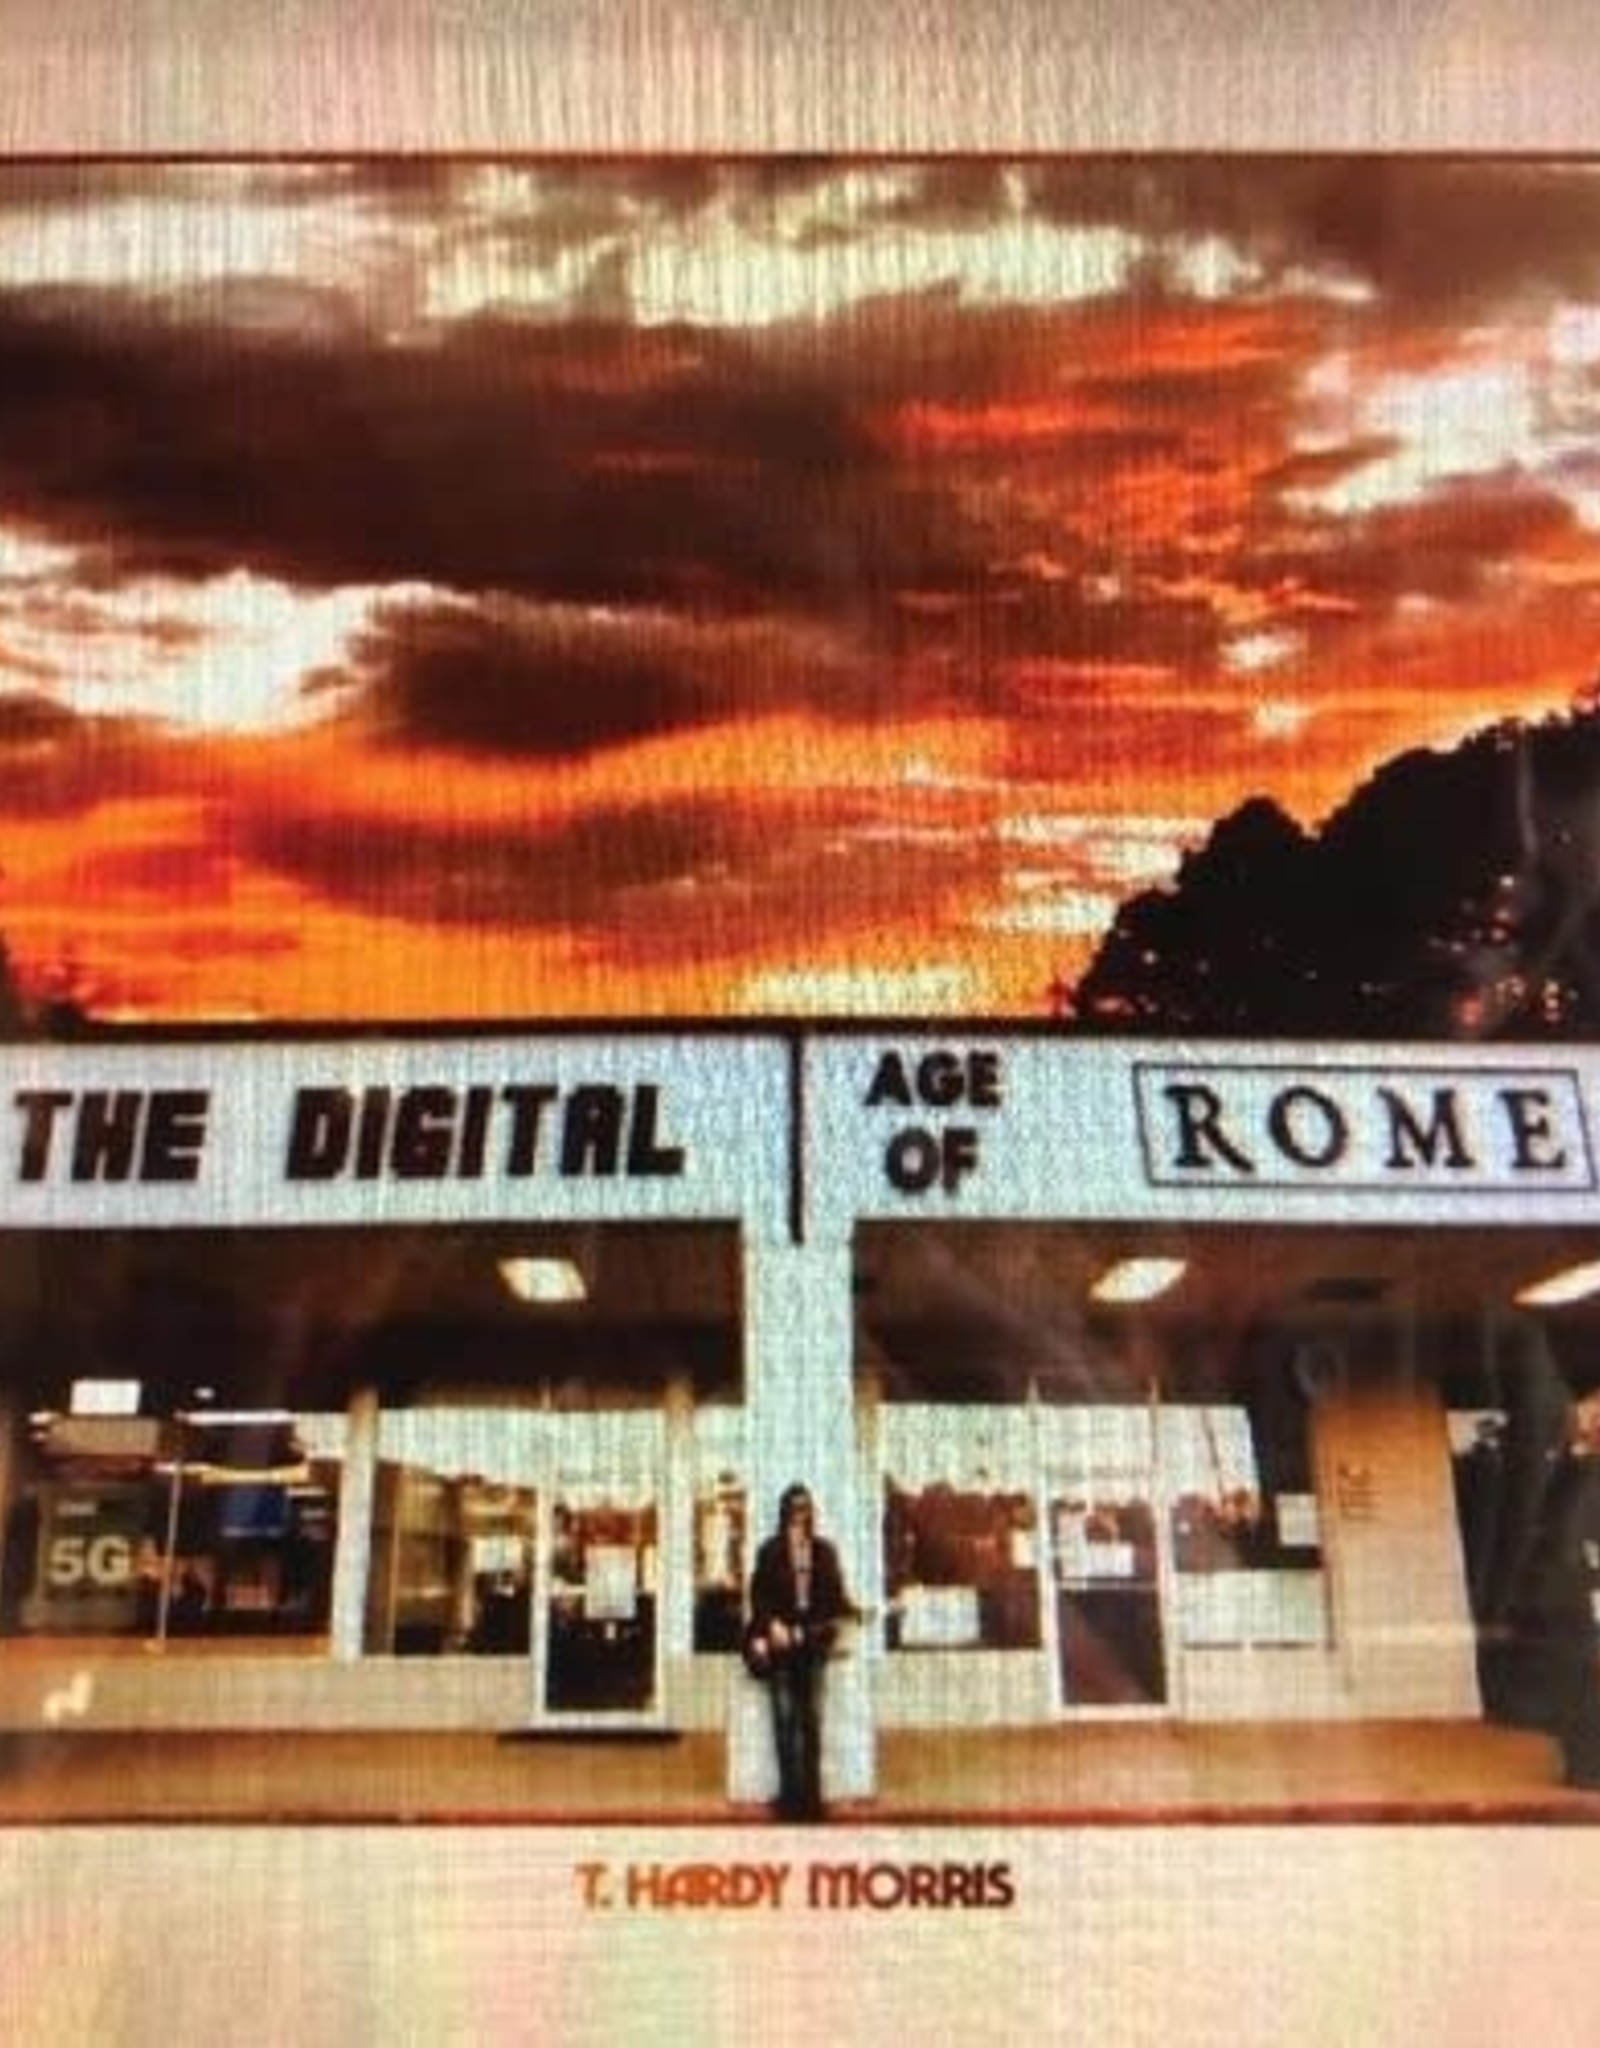 T. Hardy Morris - Digital Age of Rome (Clear Vinyl, Limited Edition, Coke Bottle Green, Indie Exclusive)